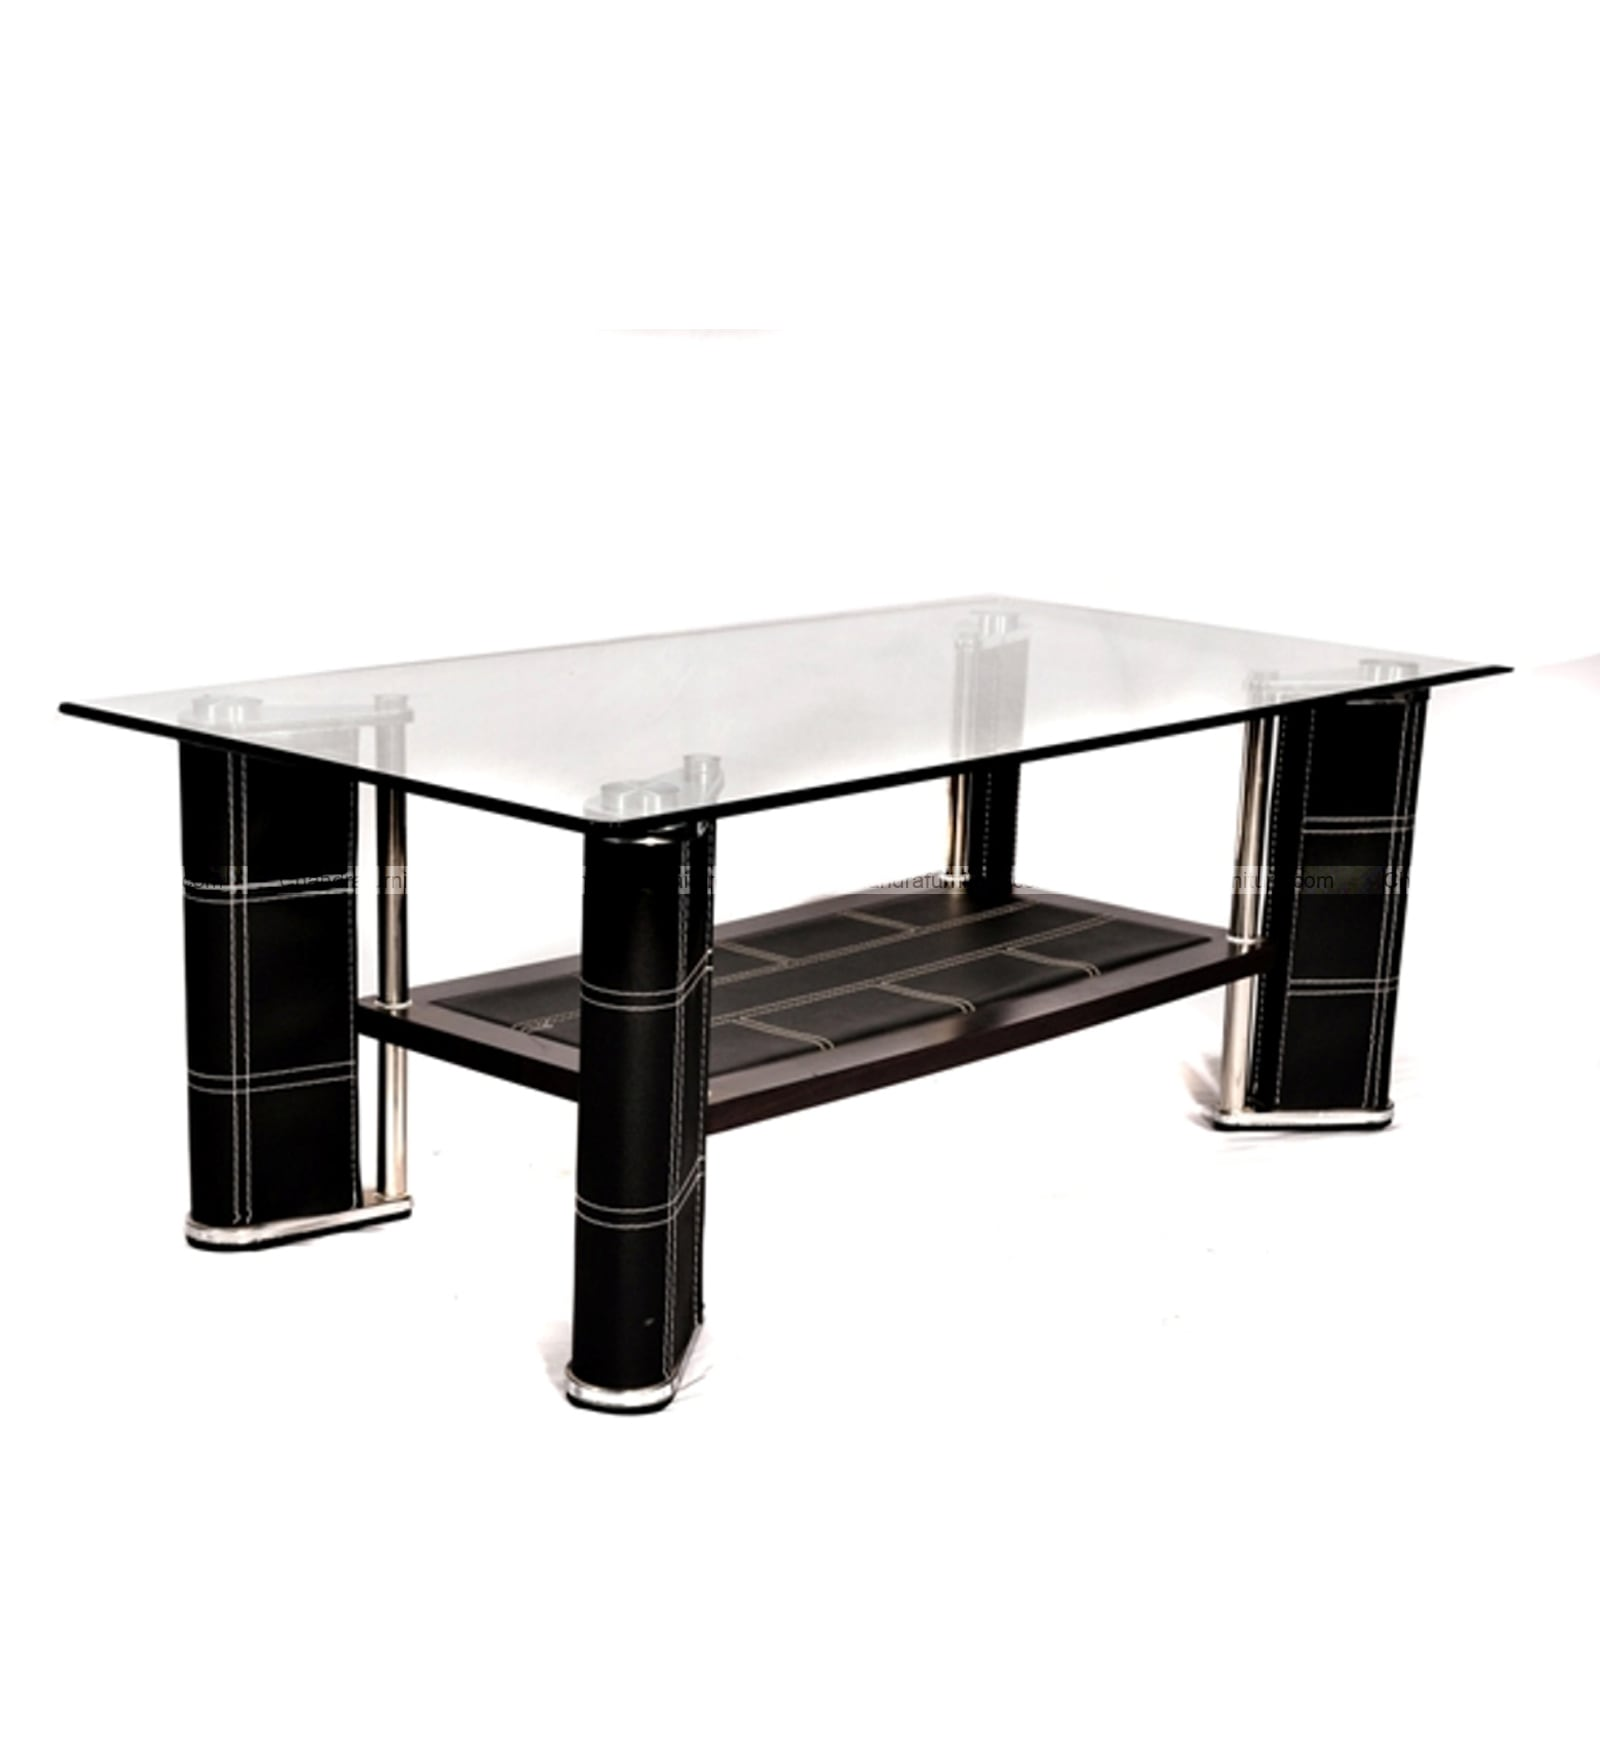 CHANDRA FURNITURE CENTER TABLE  CT-115